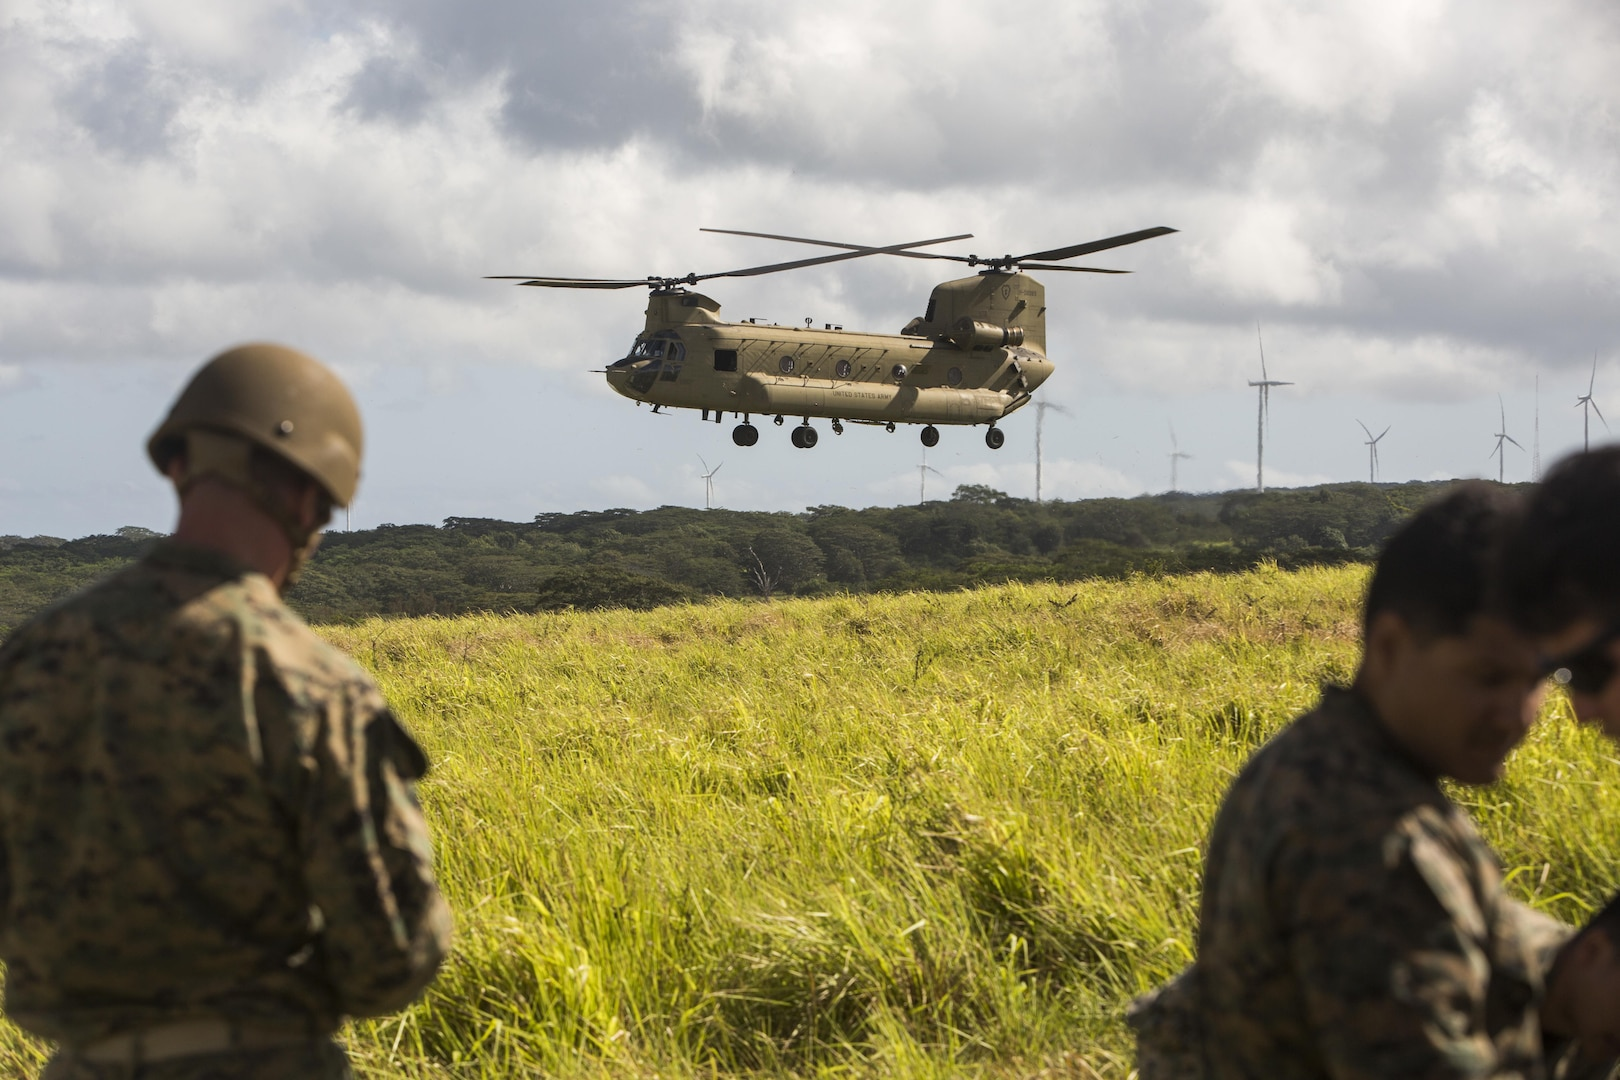 SCHOFIELD BARRACKS – A CH-47 Chinook helicopter prepares to land during an airborne parachute training exercise at Schofield Barracks, July 14, 2017. Marines with 4th Force Reconnaissance Company trained with U.S. Army Special Forces to maintain proficiency in completing static line and high altitude free fall airborne jumps. (U.S. Marine Corps photo by Lance Cpl. Isabelo Tabanguil)